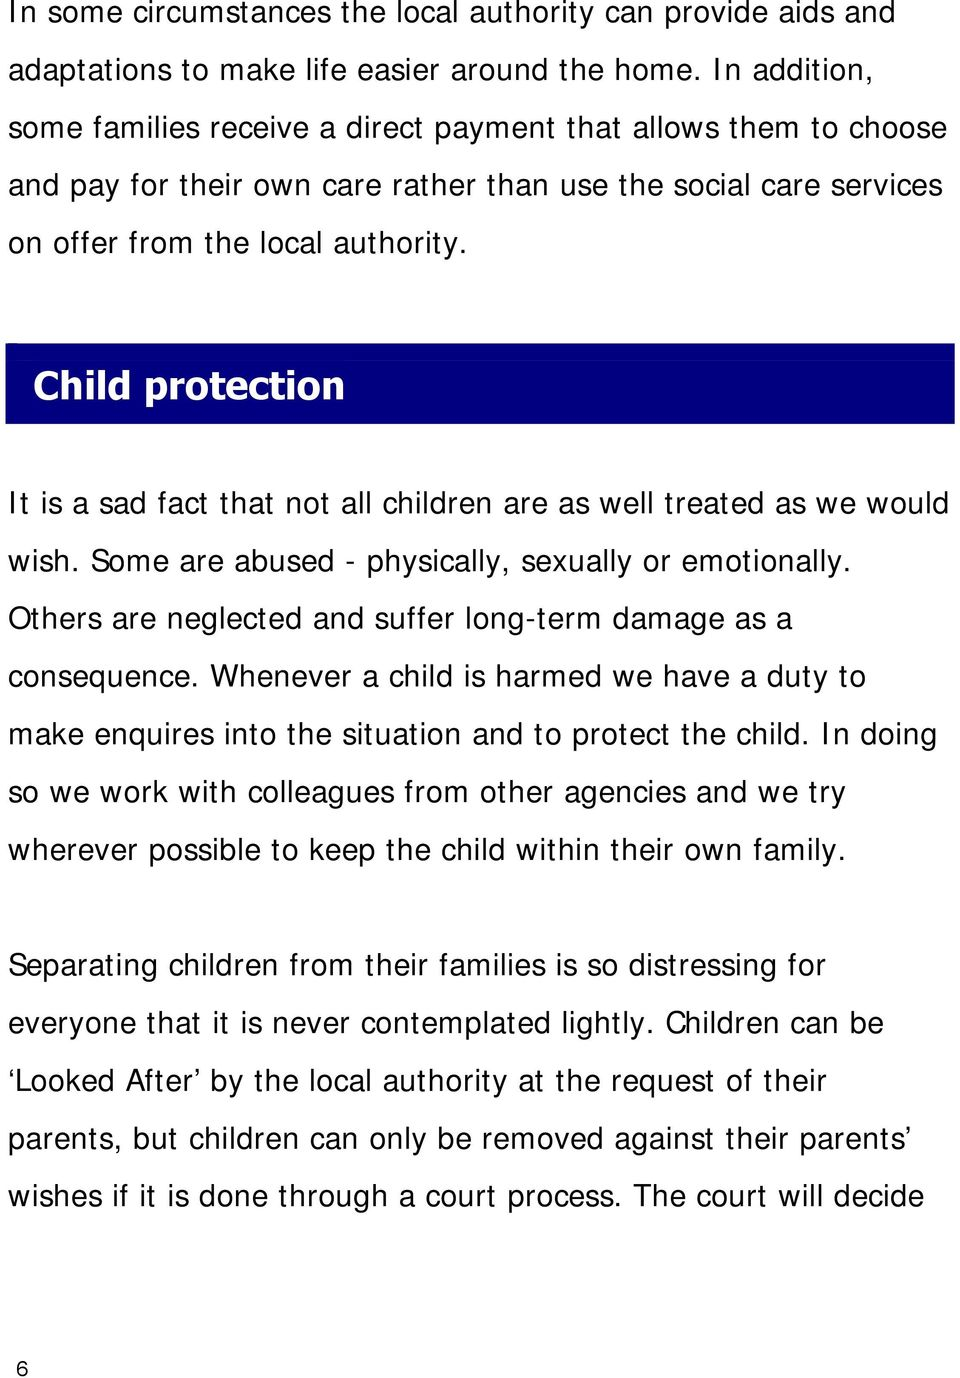 Child protection It is a sad fact that not all children are as well treated as we would wish. Some are abused - physically, sexually or emotionally.